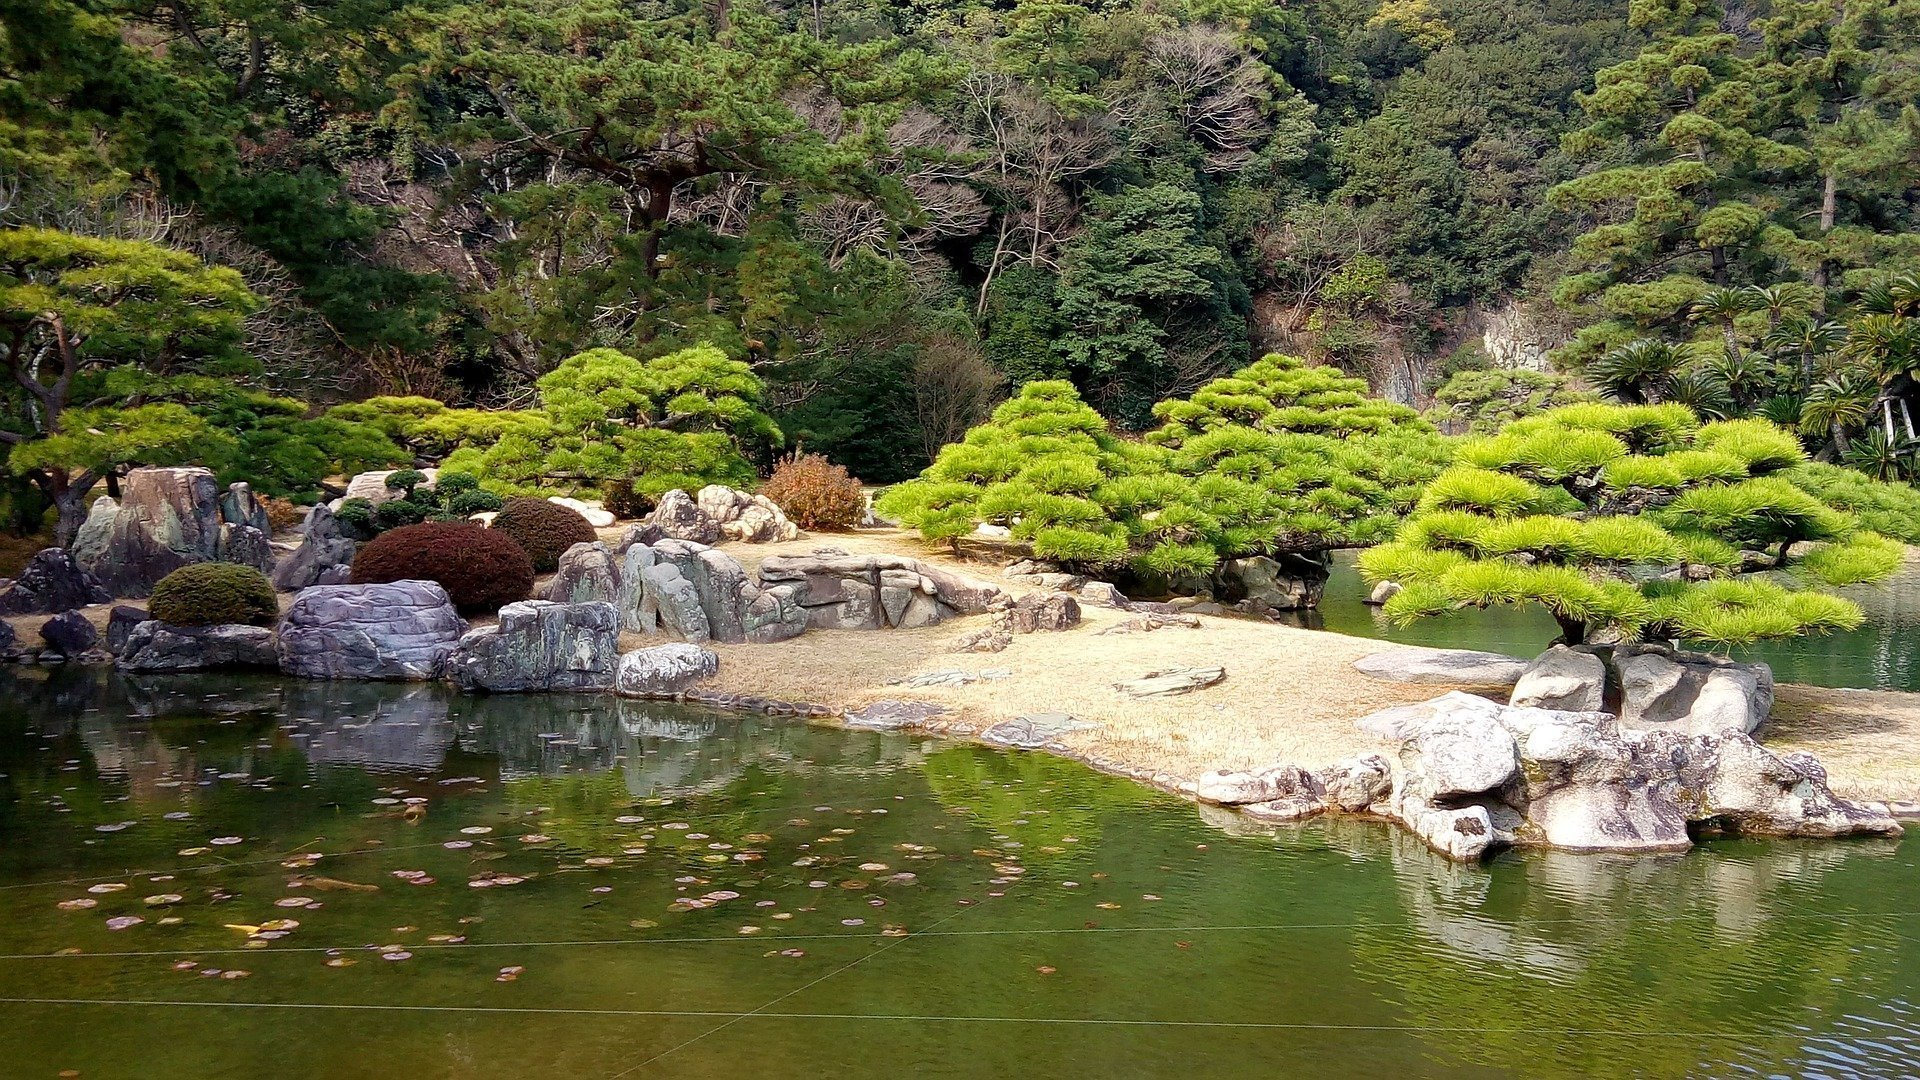 5-Day Shikoku 88-Ohenro Pilgrimage Tour by Private Car - Japan Itinerary